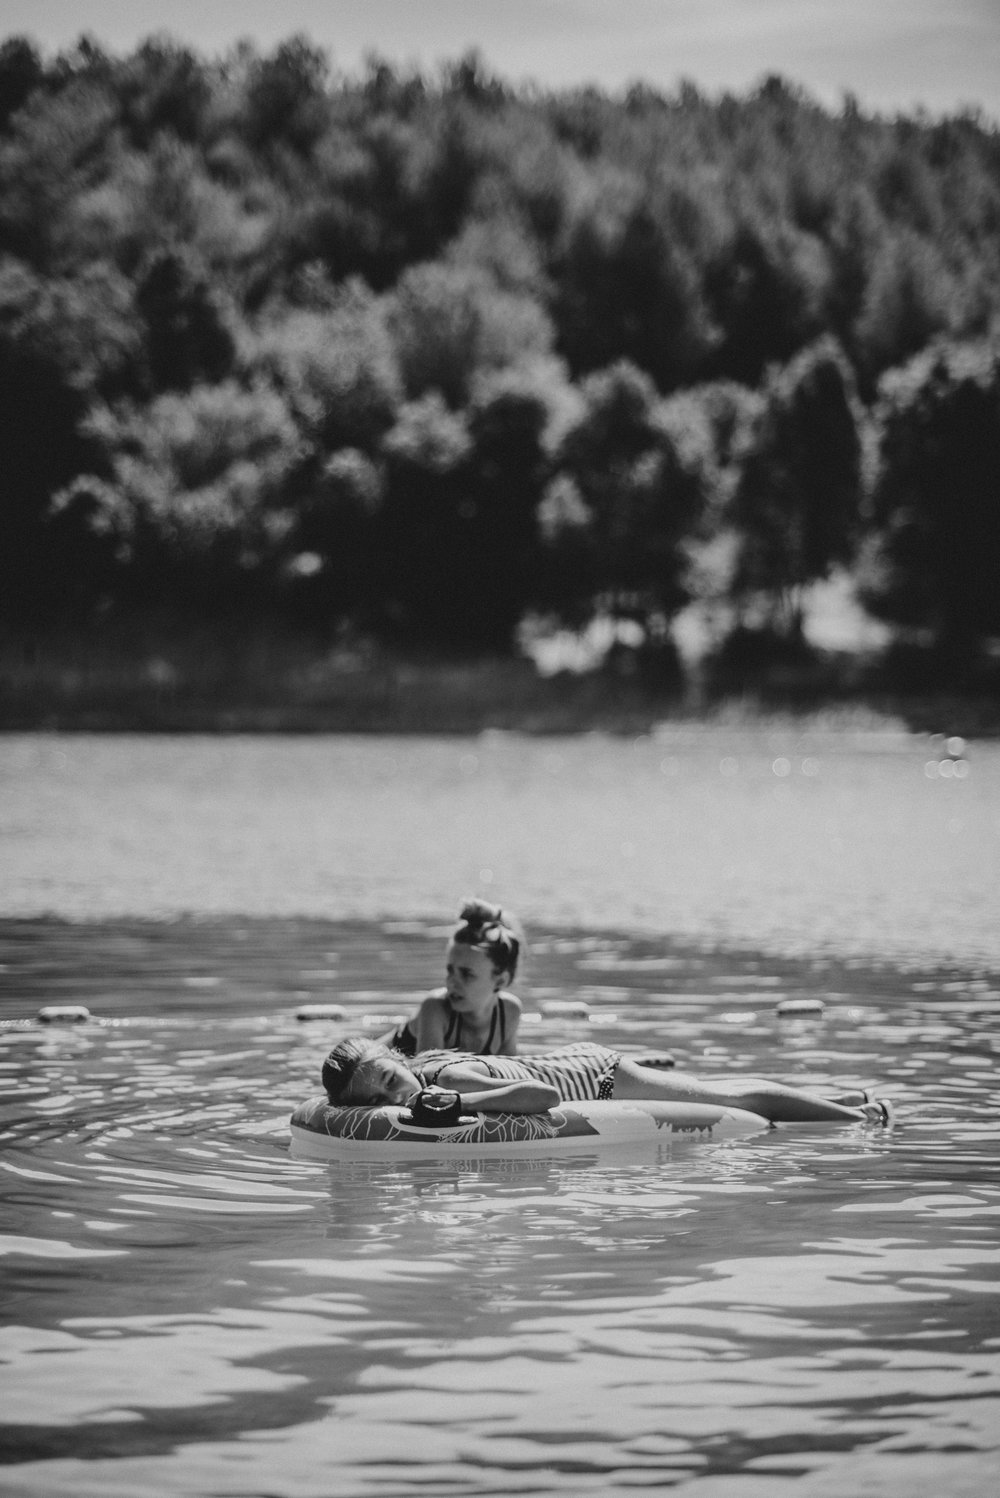 Little girl in boat on lake Essex UK Documentary Portrait Photographer